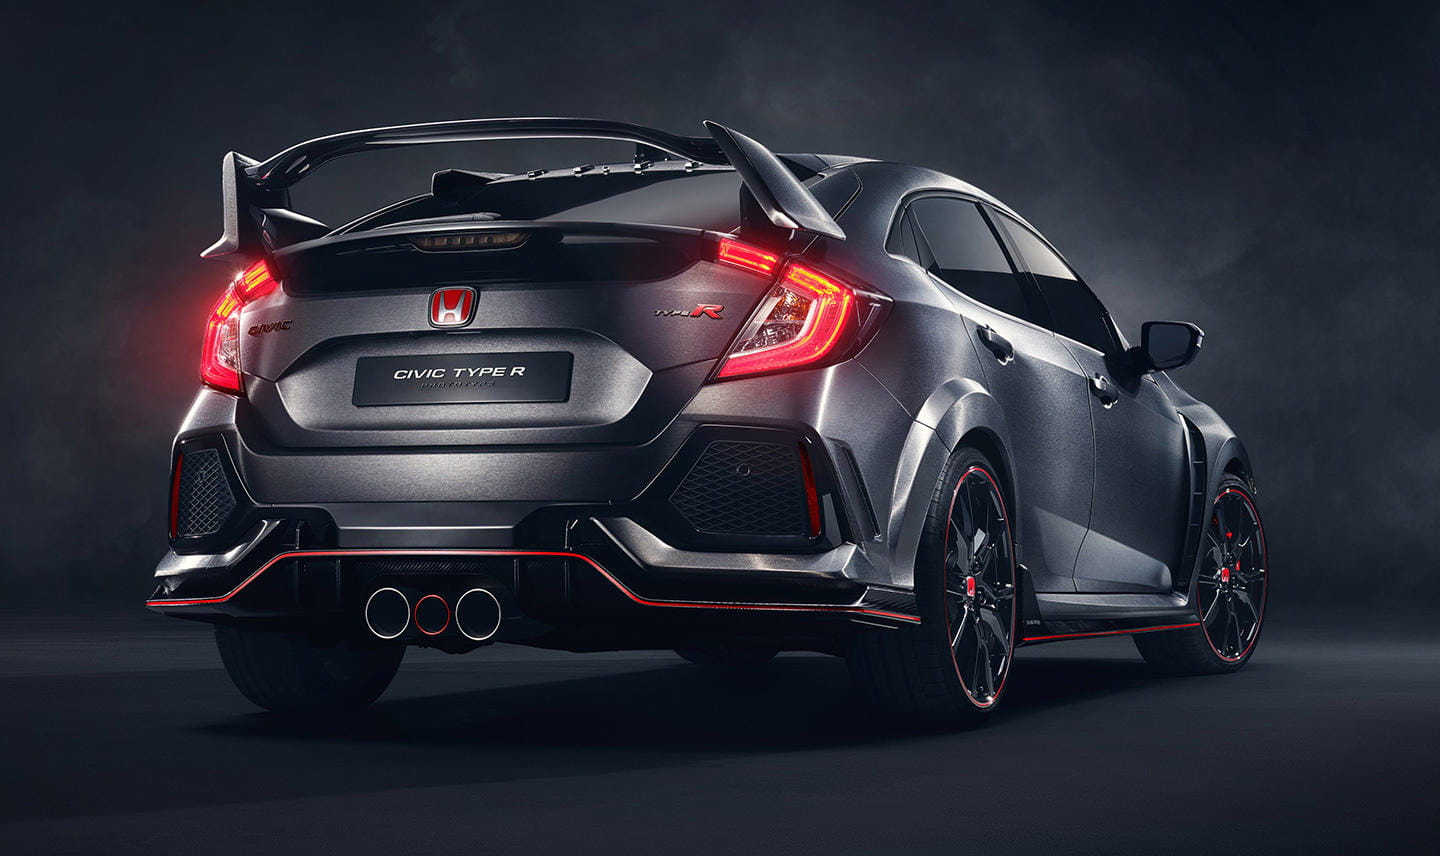 brutal el nuevo honda civic type r desvelado en 8 fotos m s bestia que nunca diariomotor. Black Bedroom Furniture Sets. Home Design Ideas